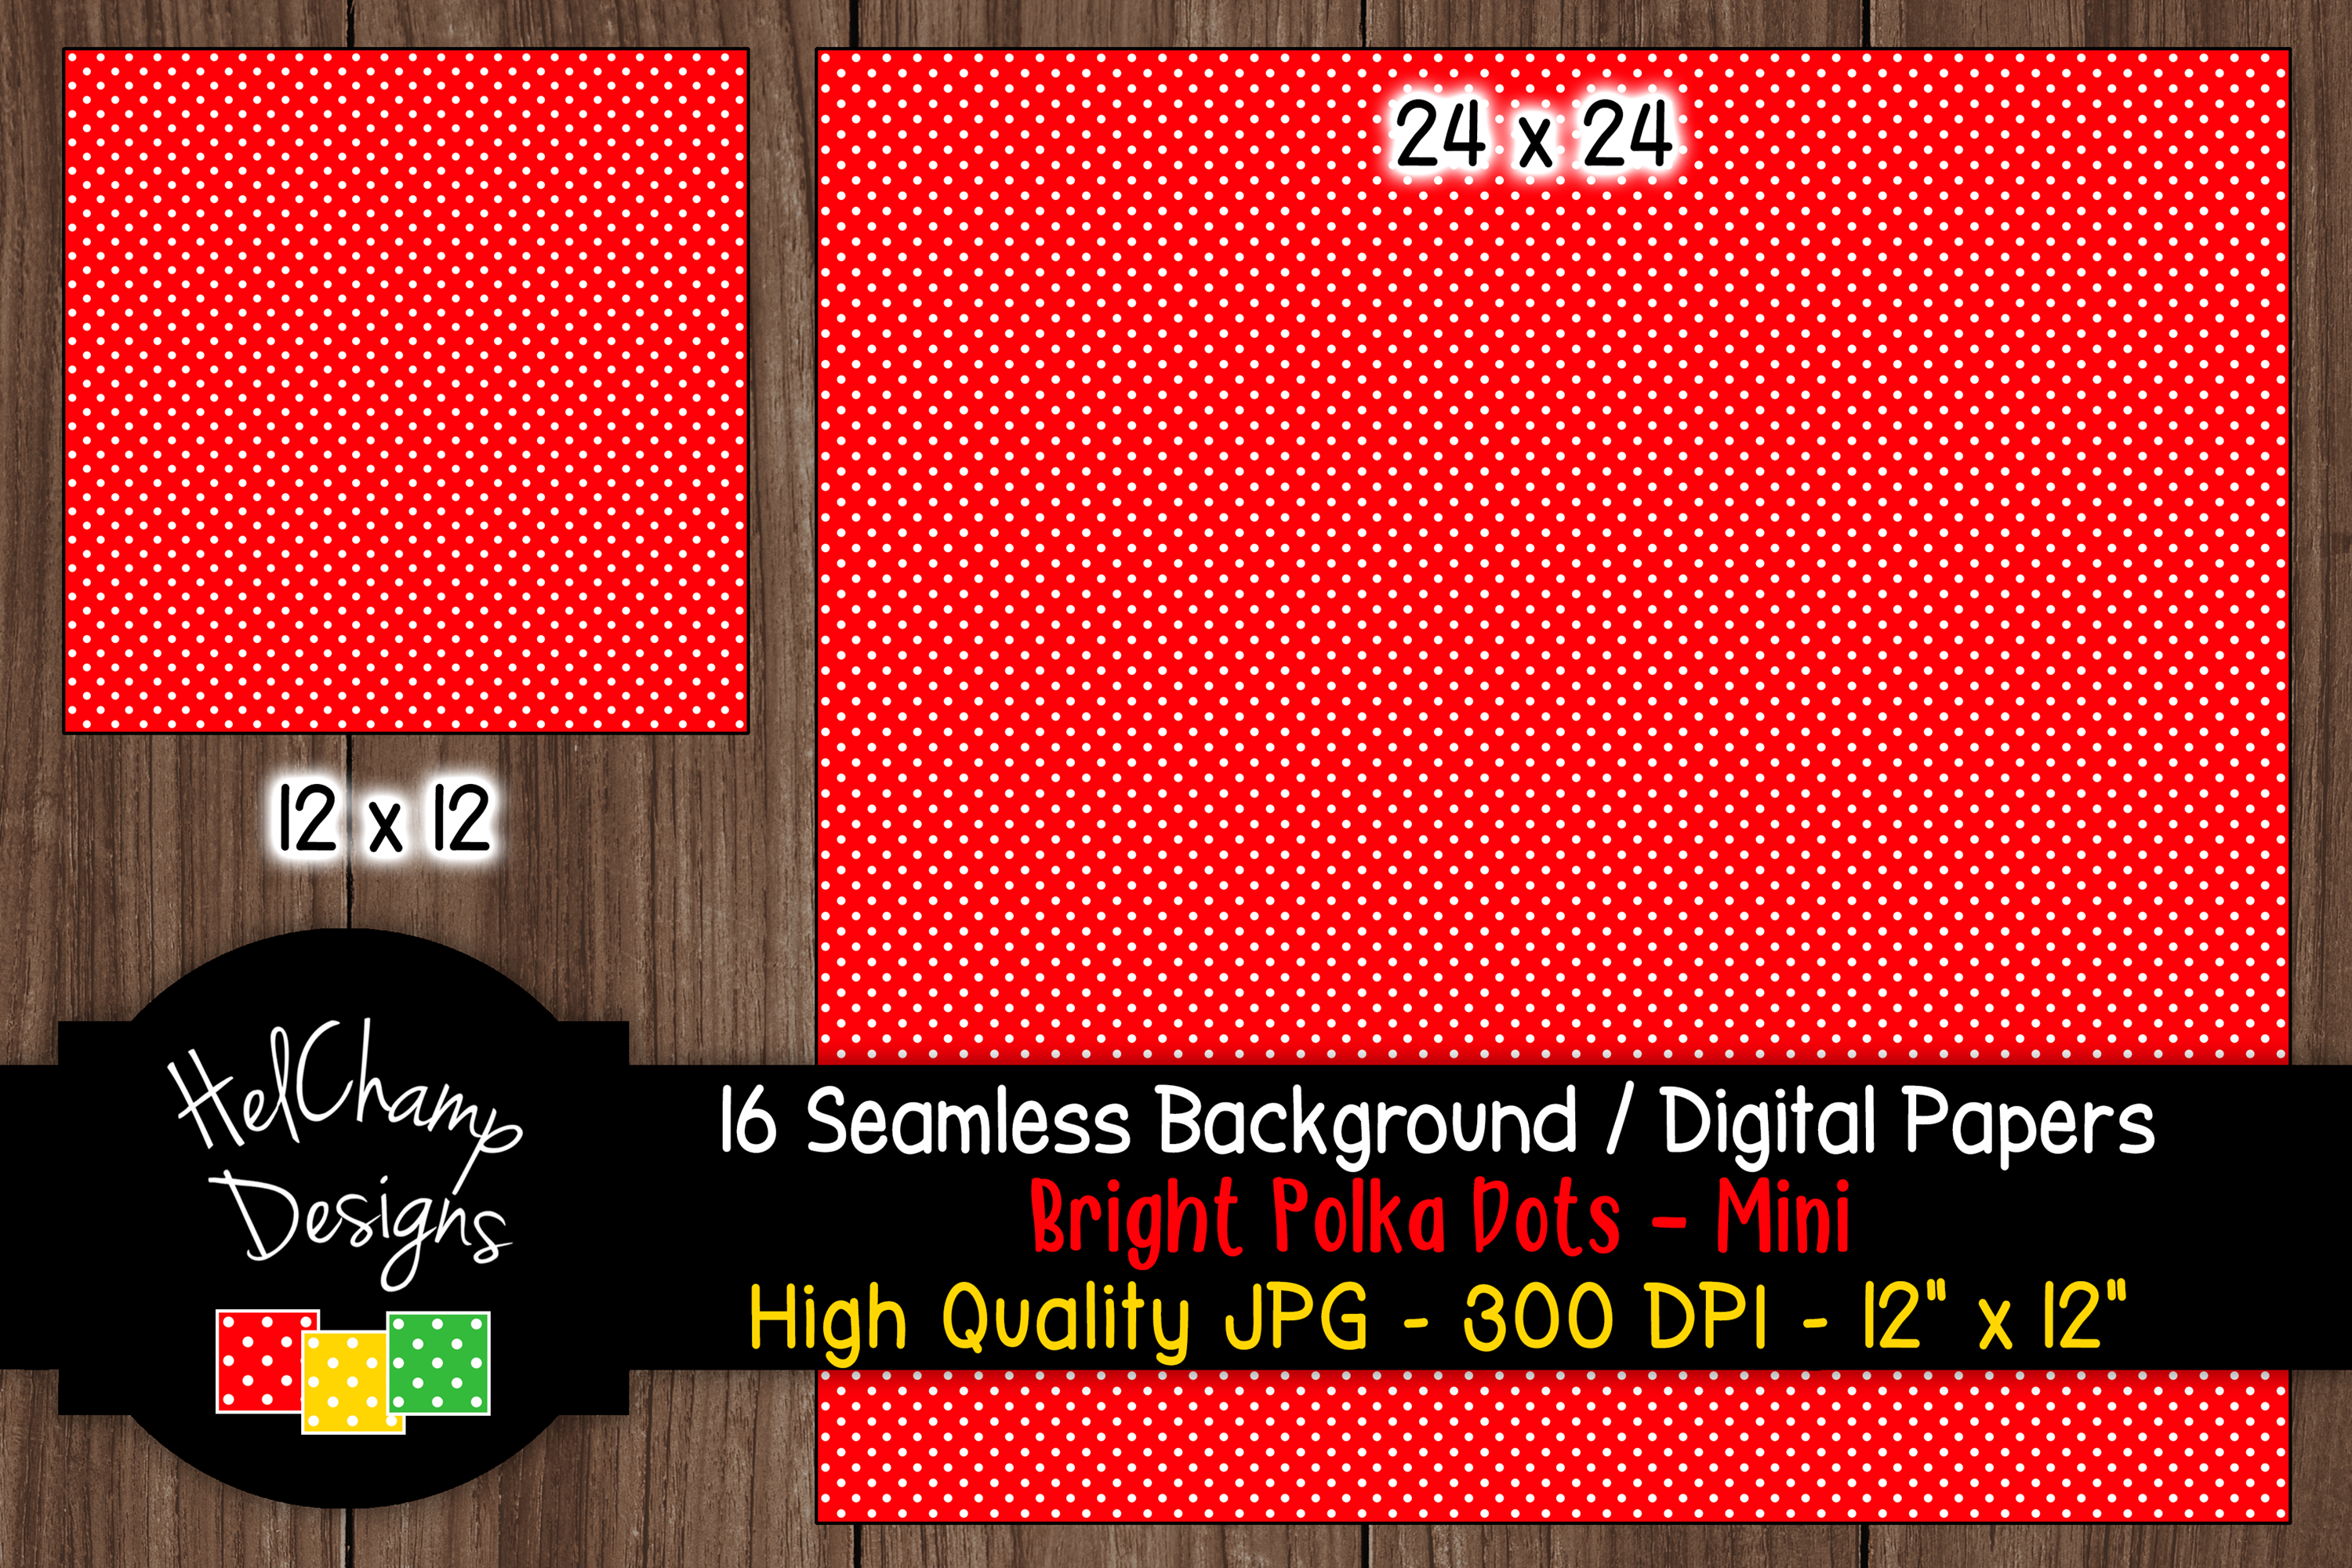 16 seamless Digital Papers - Bright Polka Dots Mini - HC017 example image 2